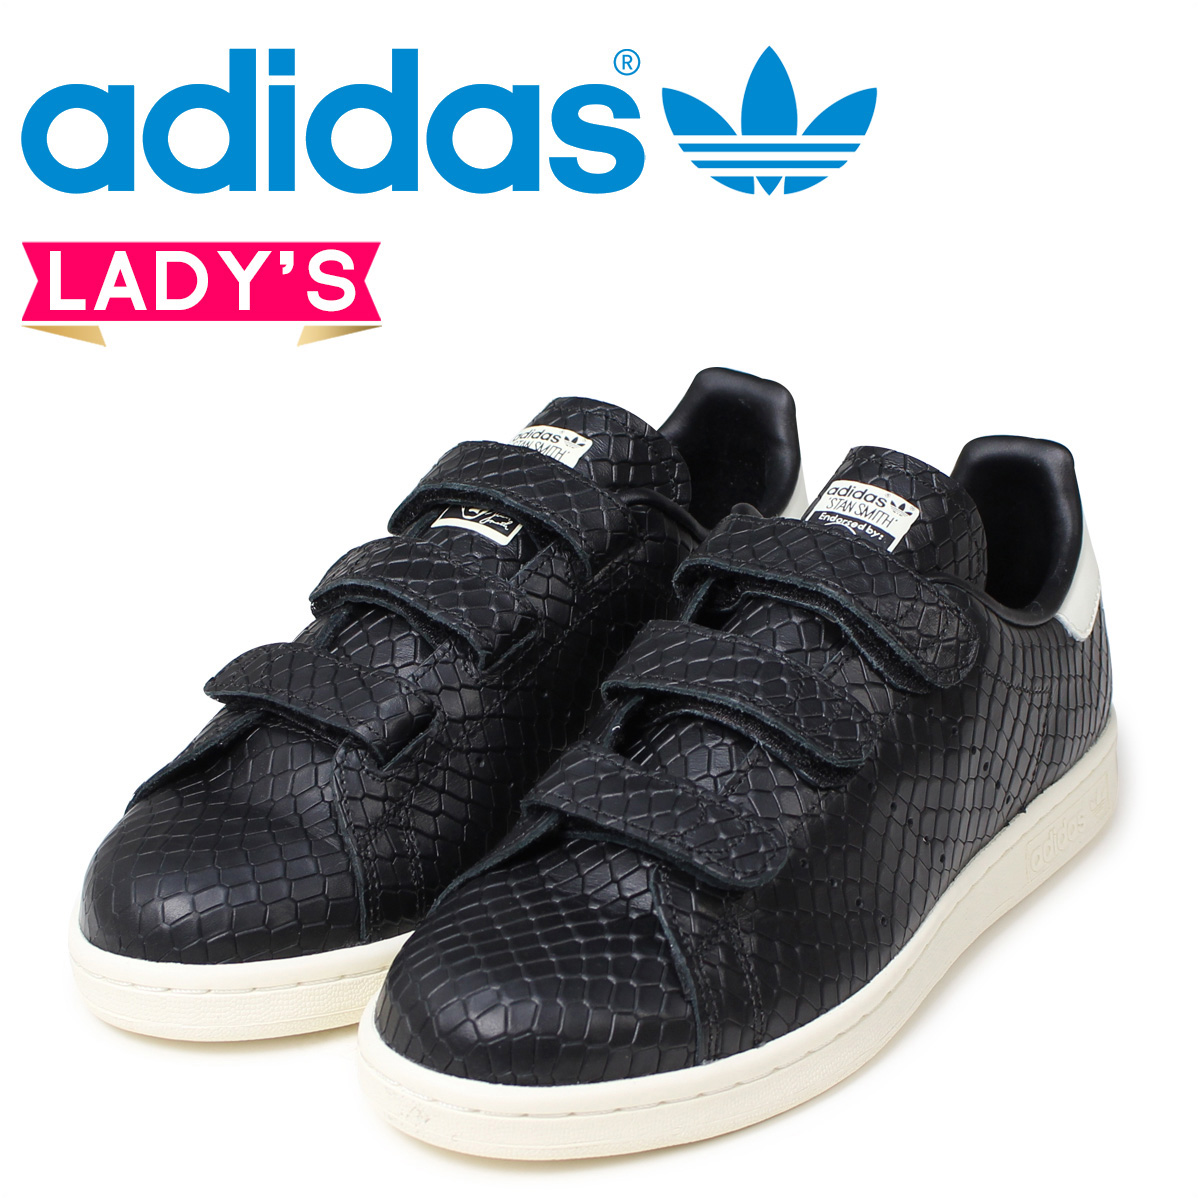 adidas stan smith velcro trainers